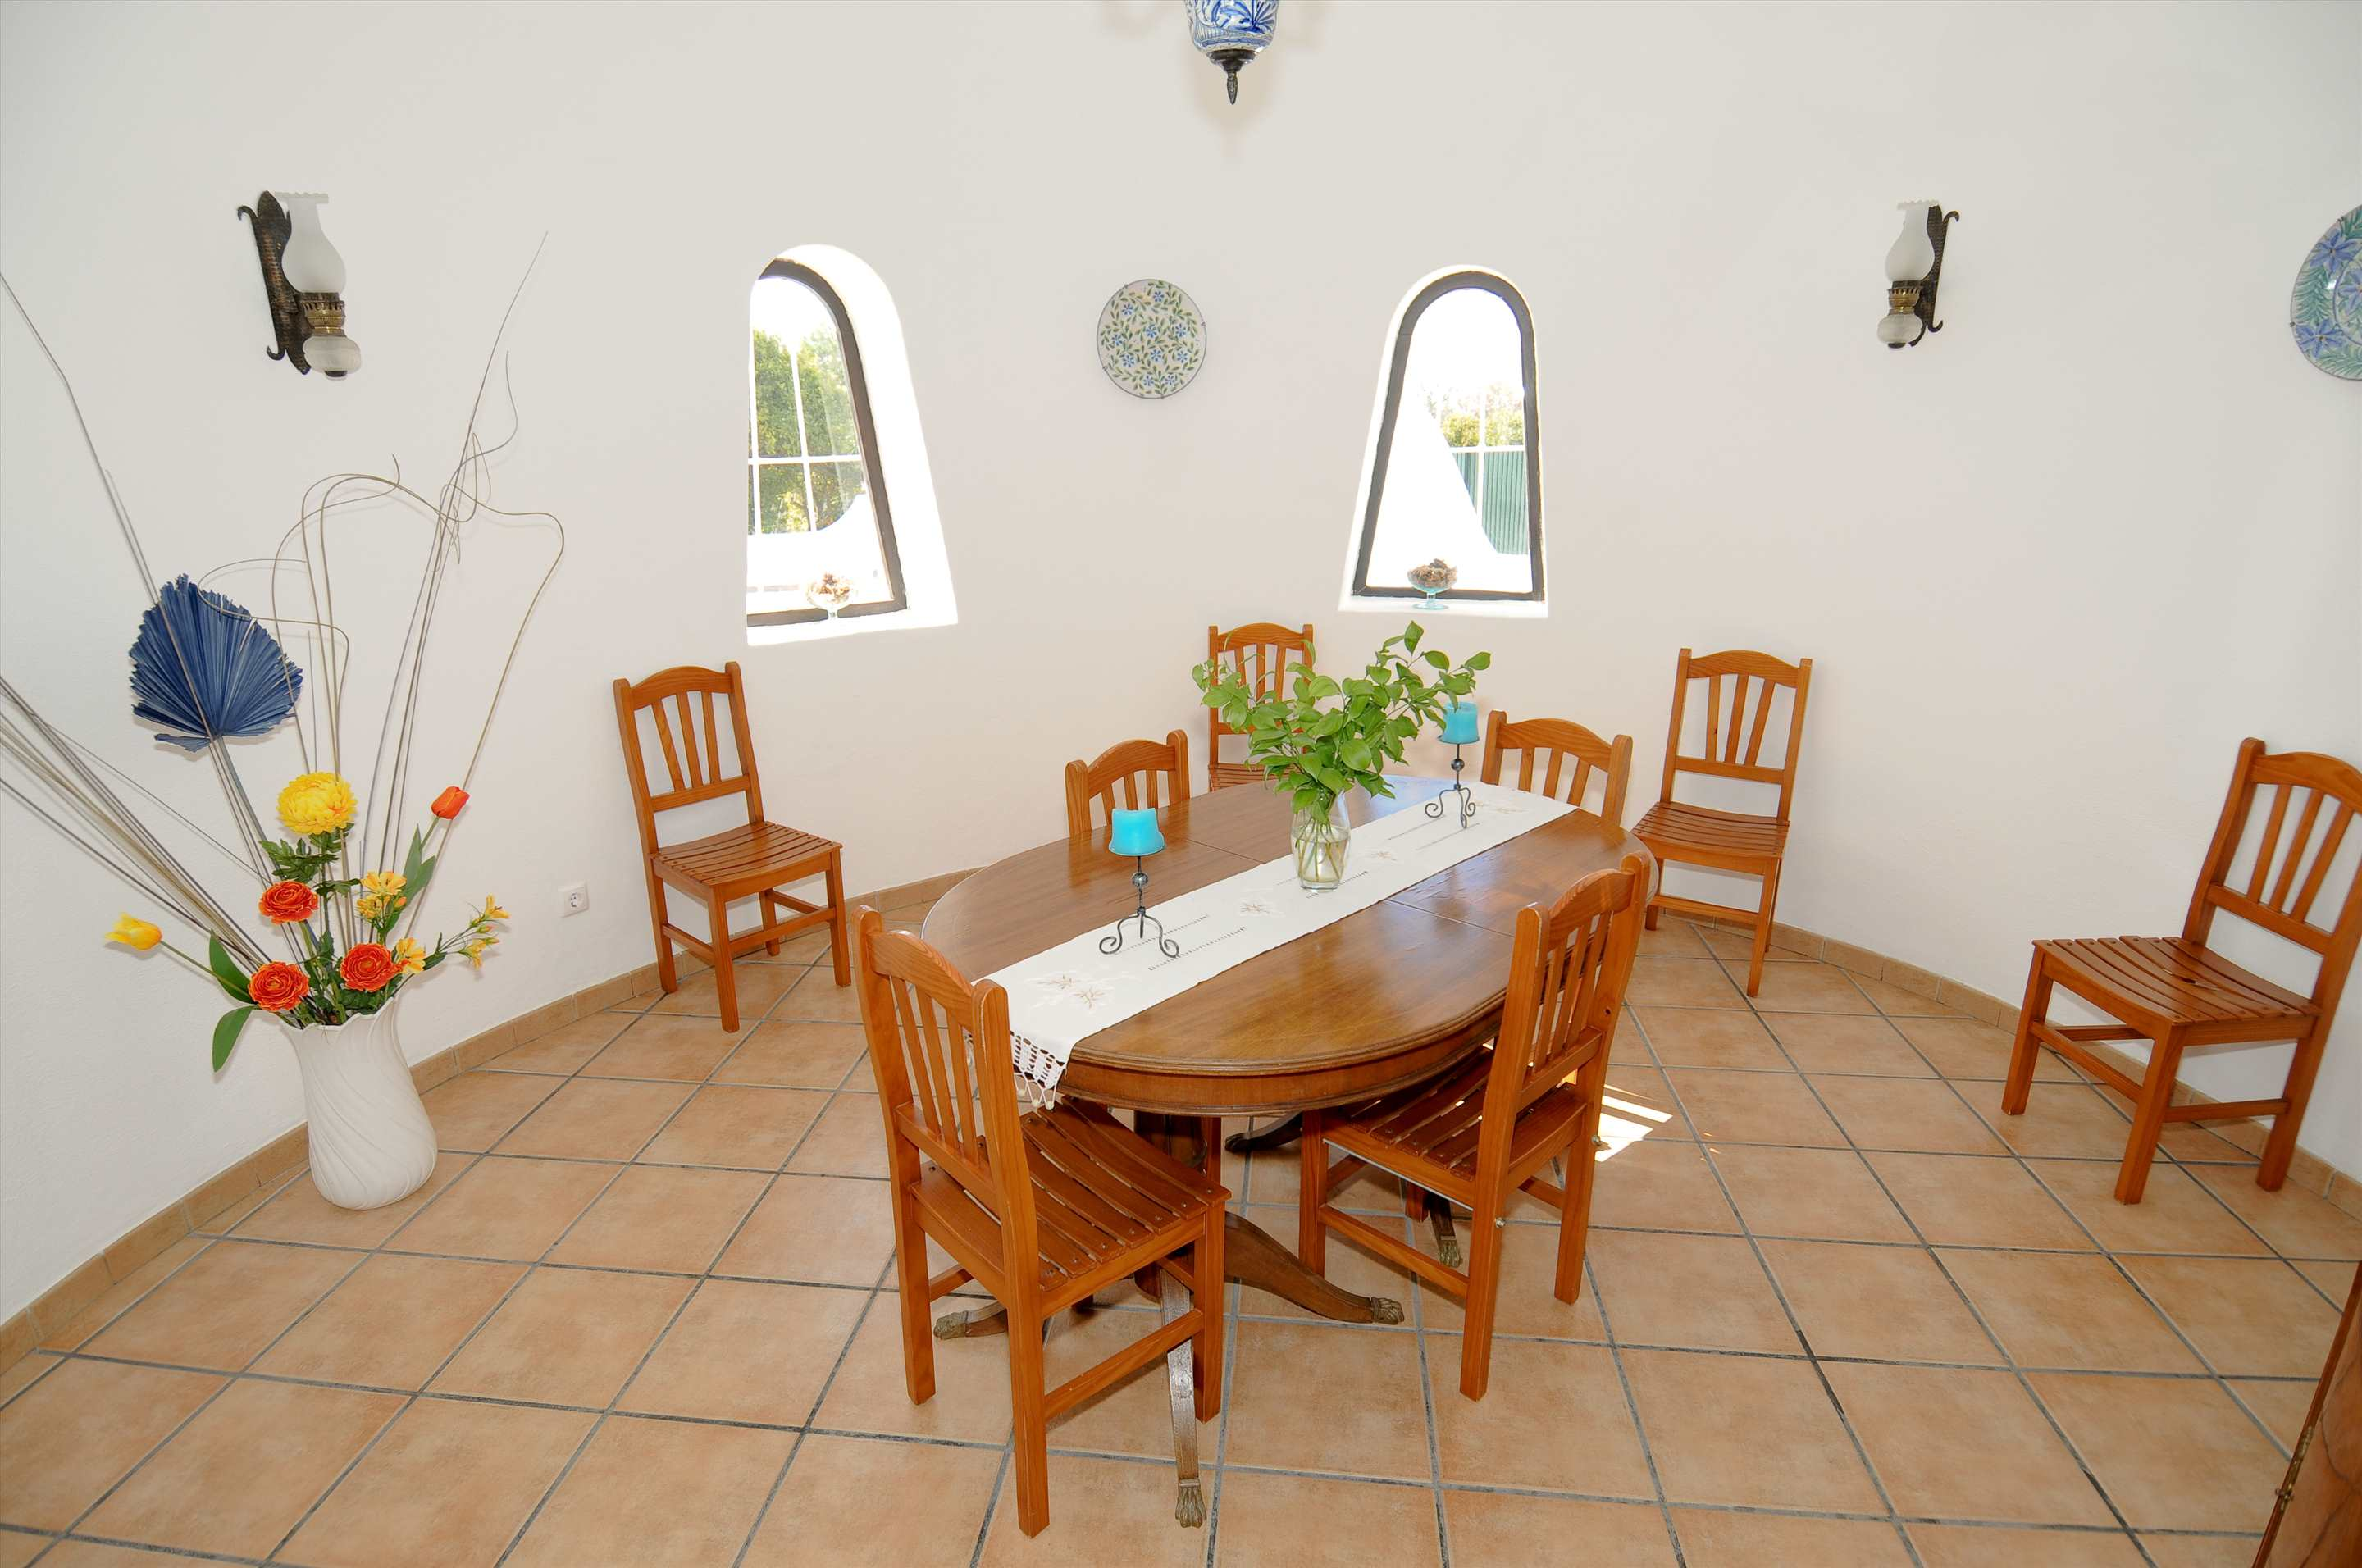 Casa Alexandra, 7-8 persons rate, 4 bedroom villa in Carvoeiro Area, Algarve Photo #4